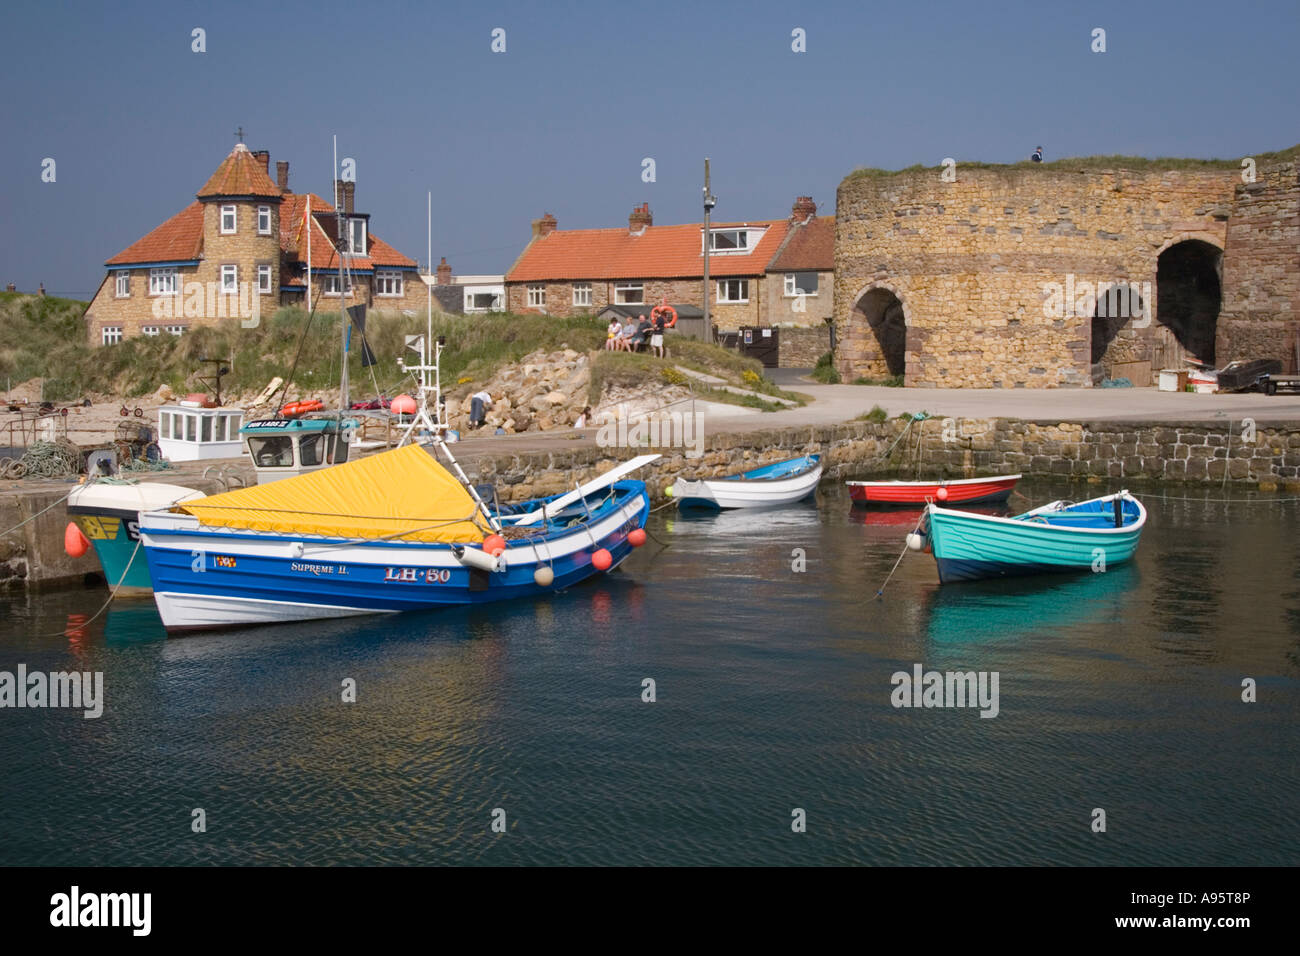 Several colorful boats in Beadnell harbour, Northumberland. - Stock Image